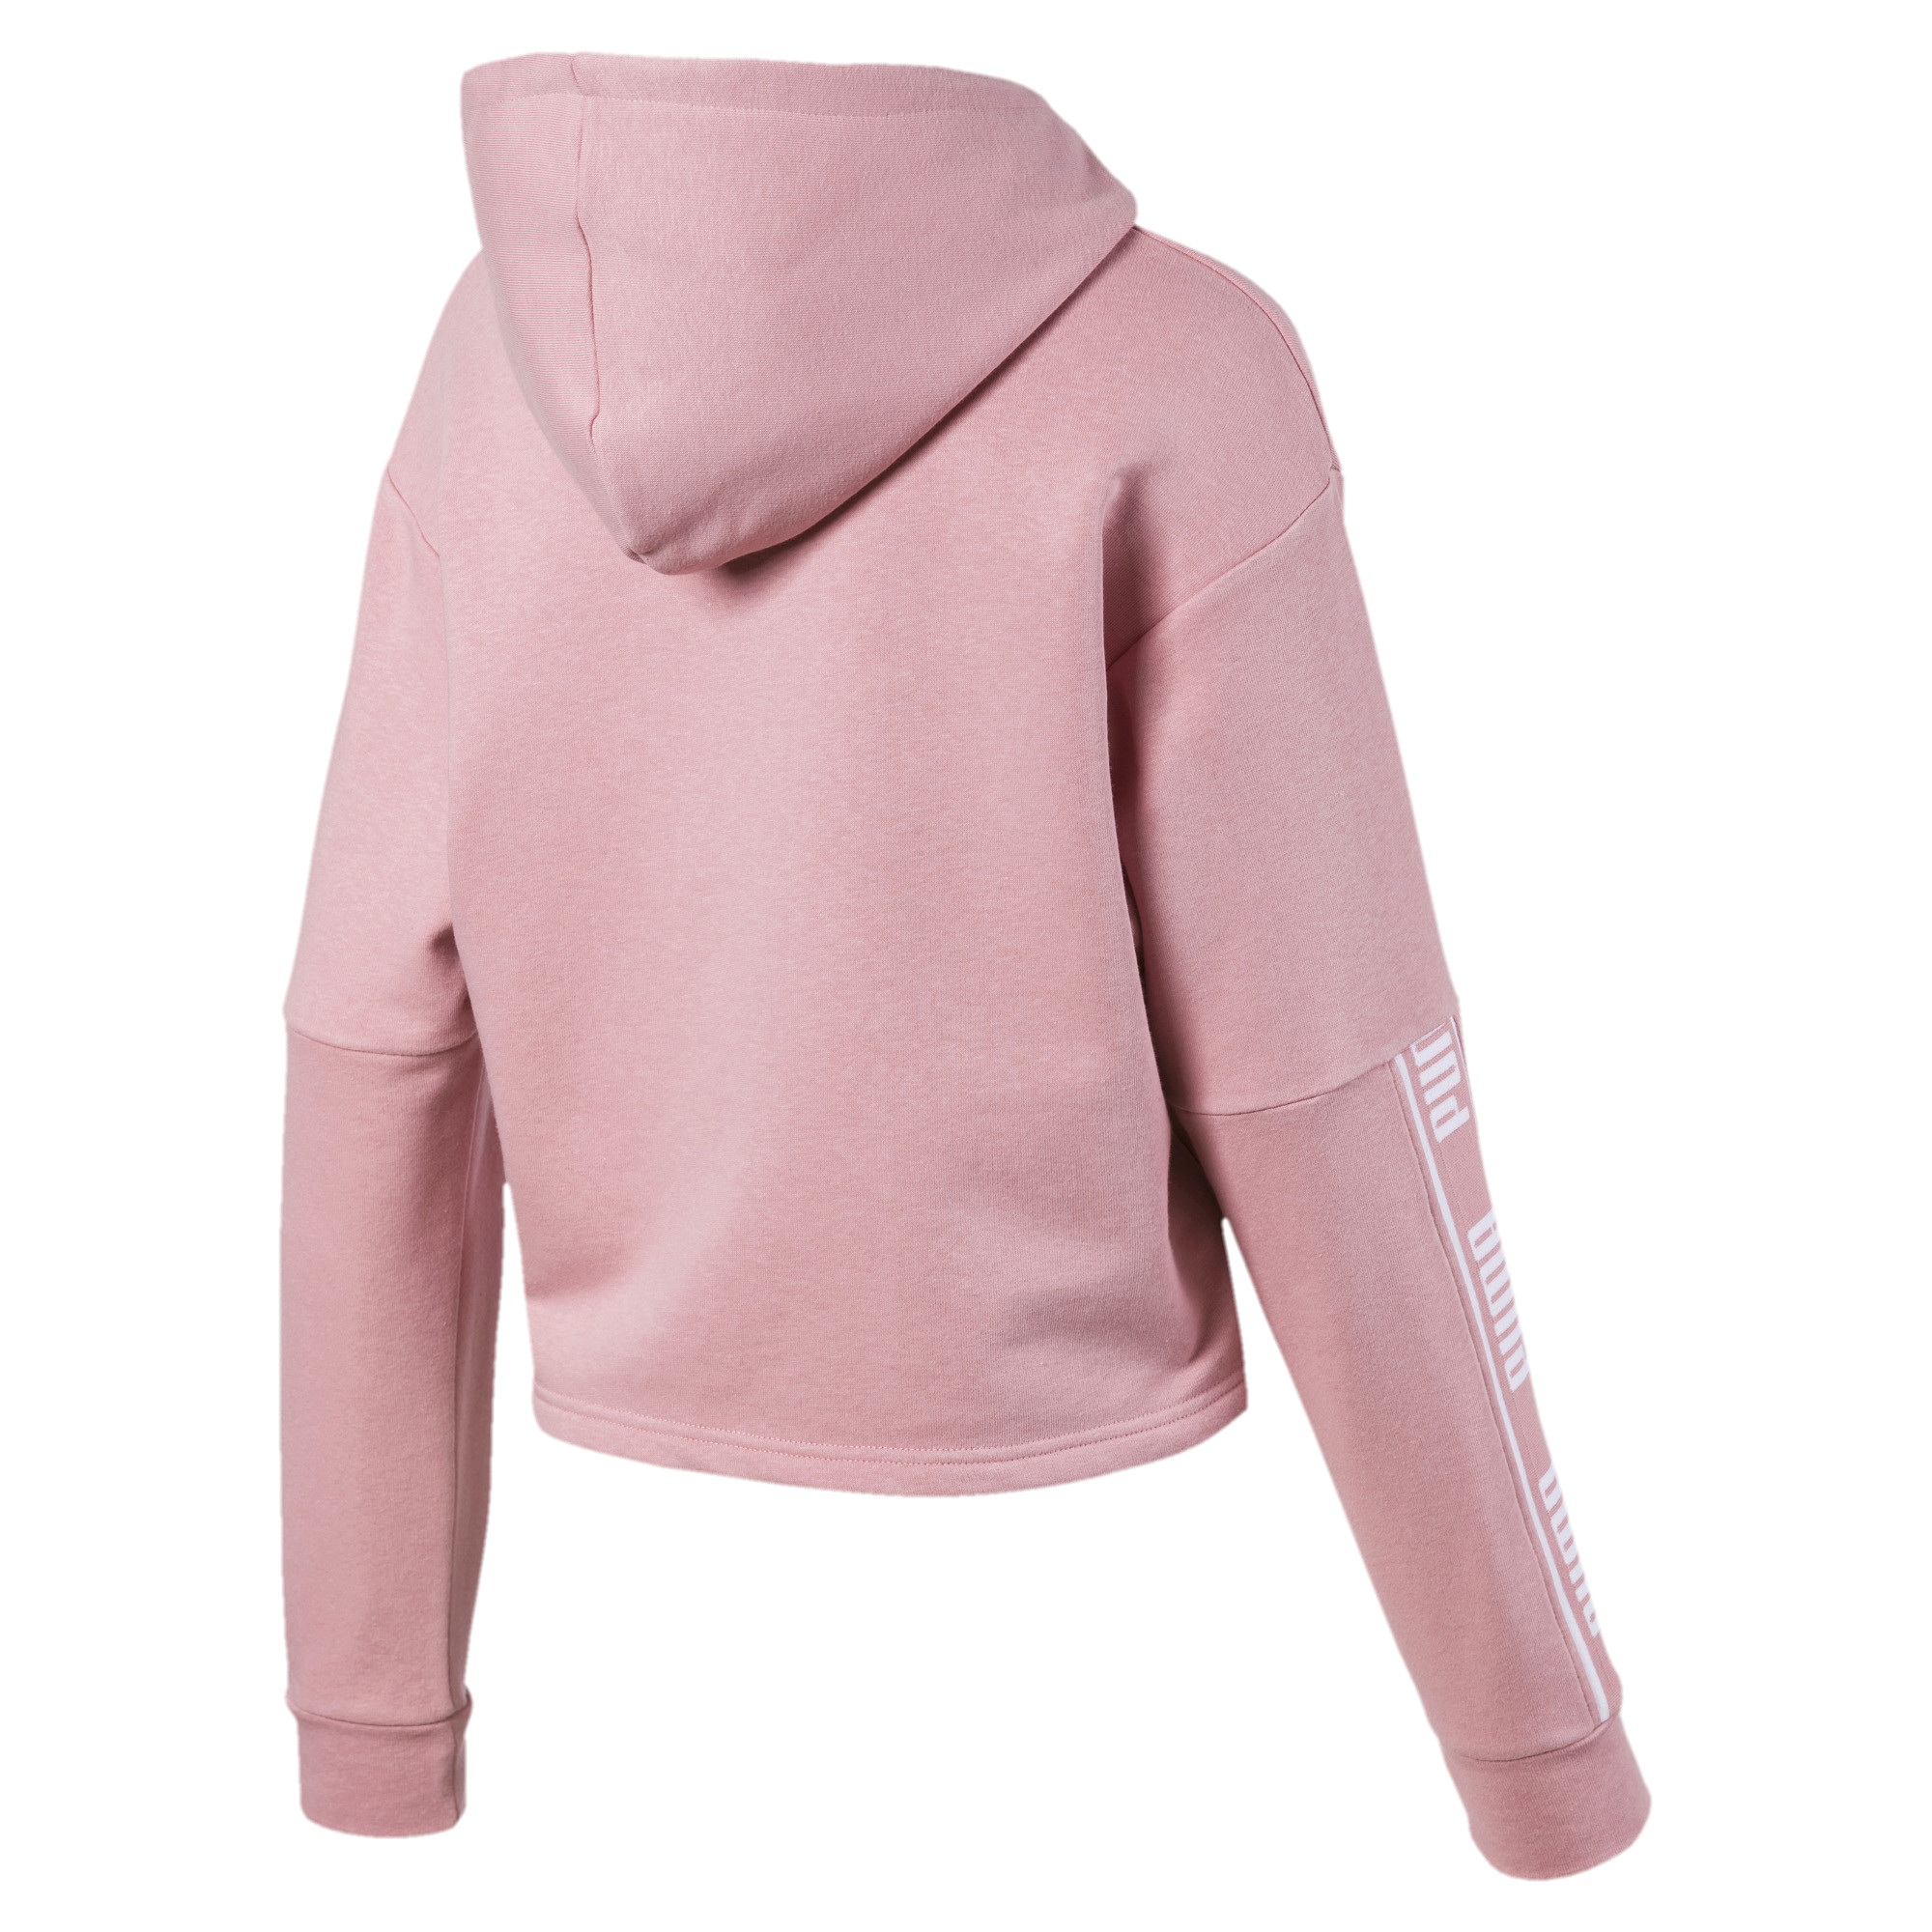 PUMA-Amplified-Women-039-s-Cropped-Hoodie-Women-Sweat-Basics thumbnail 8